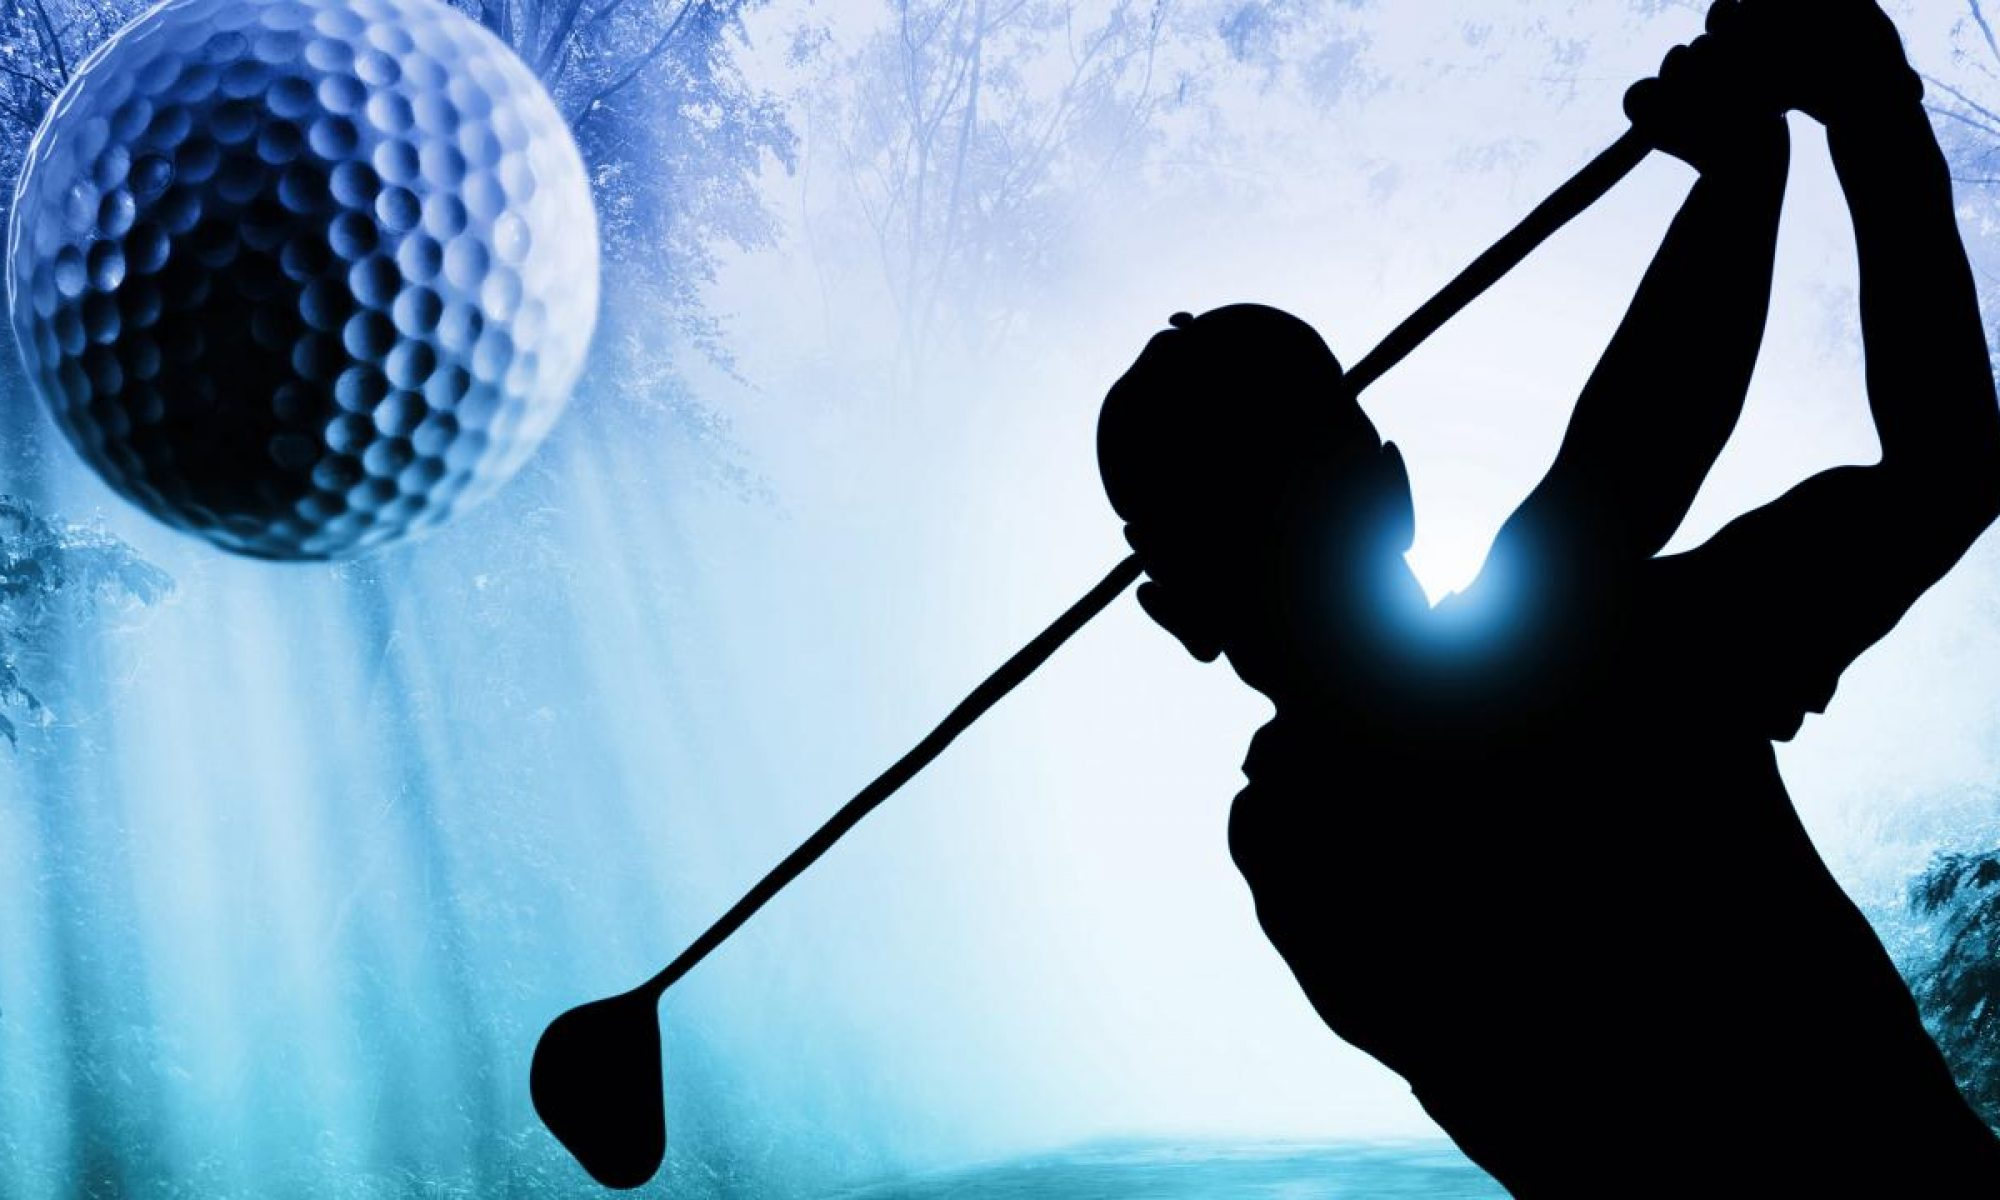 Dalewood Senior Mens Golf League